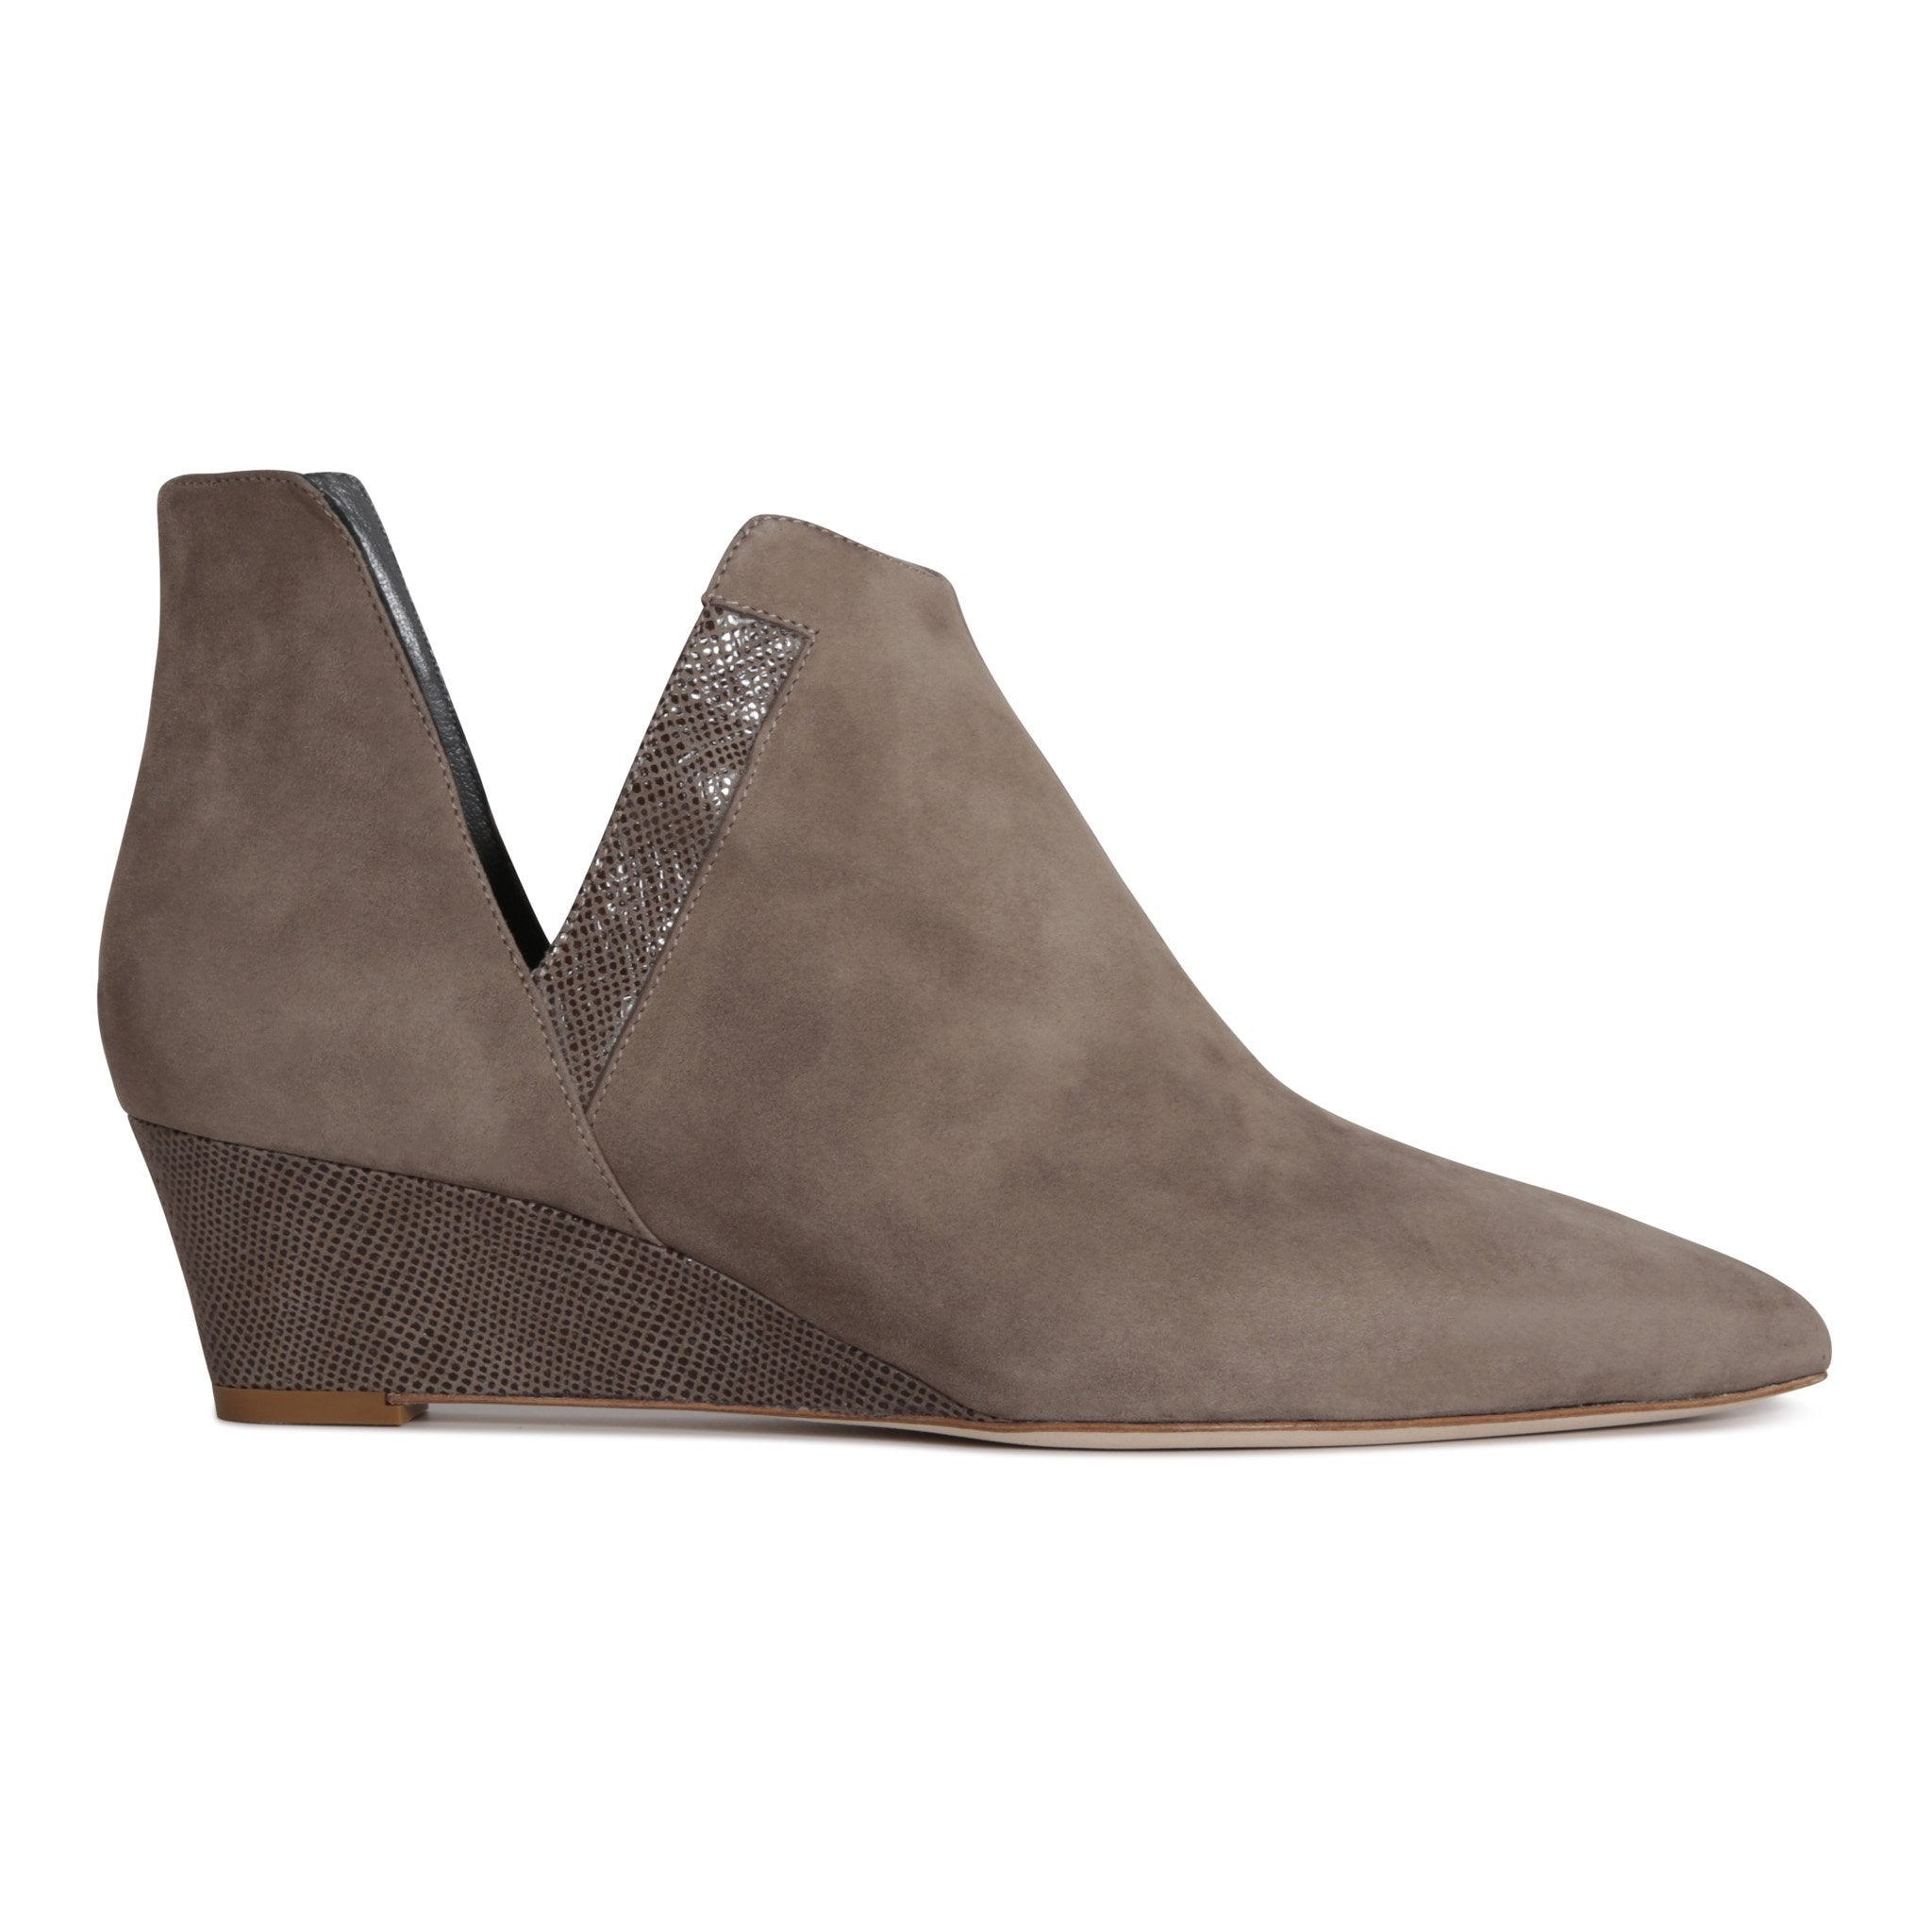 SYRENE- Velukid + Karung Taupe, VIAJIYU - Women's Hand Made Sustainable Luxury Shoes. Made in Italy. Made to Order.